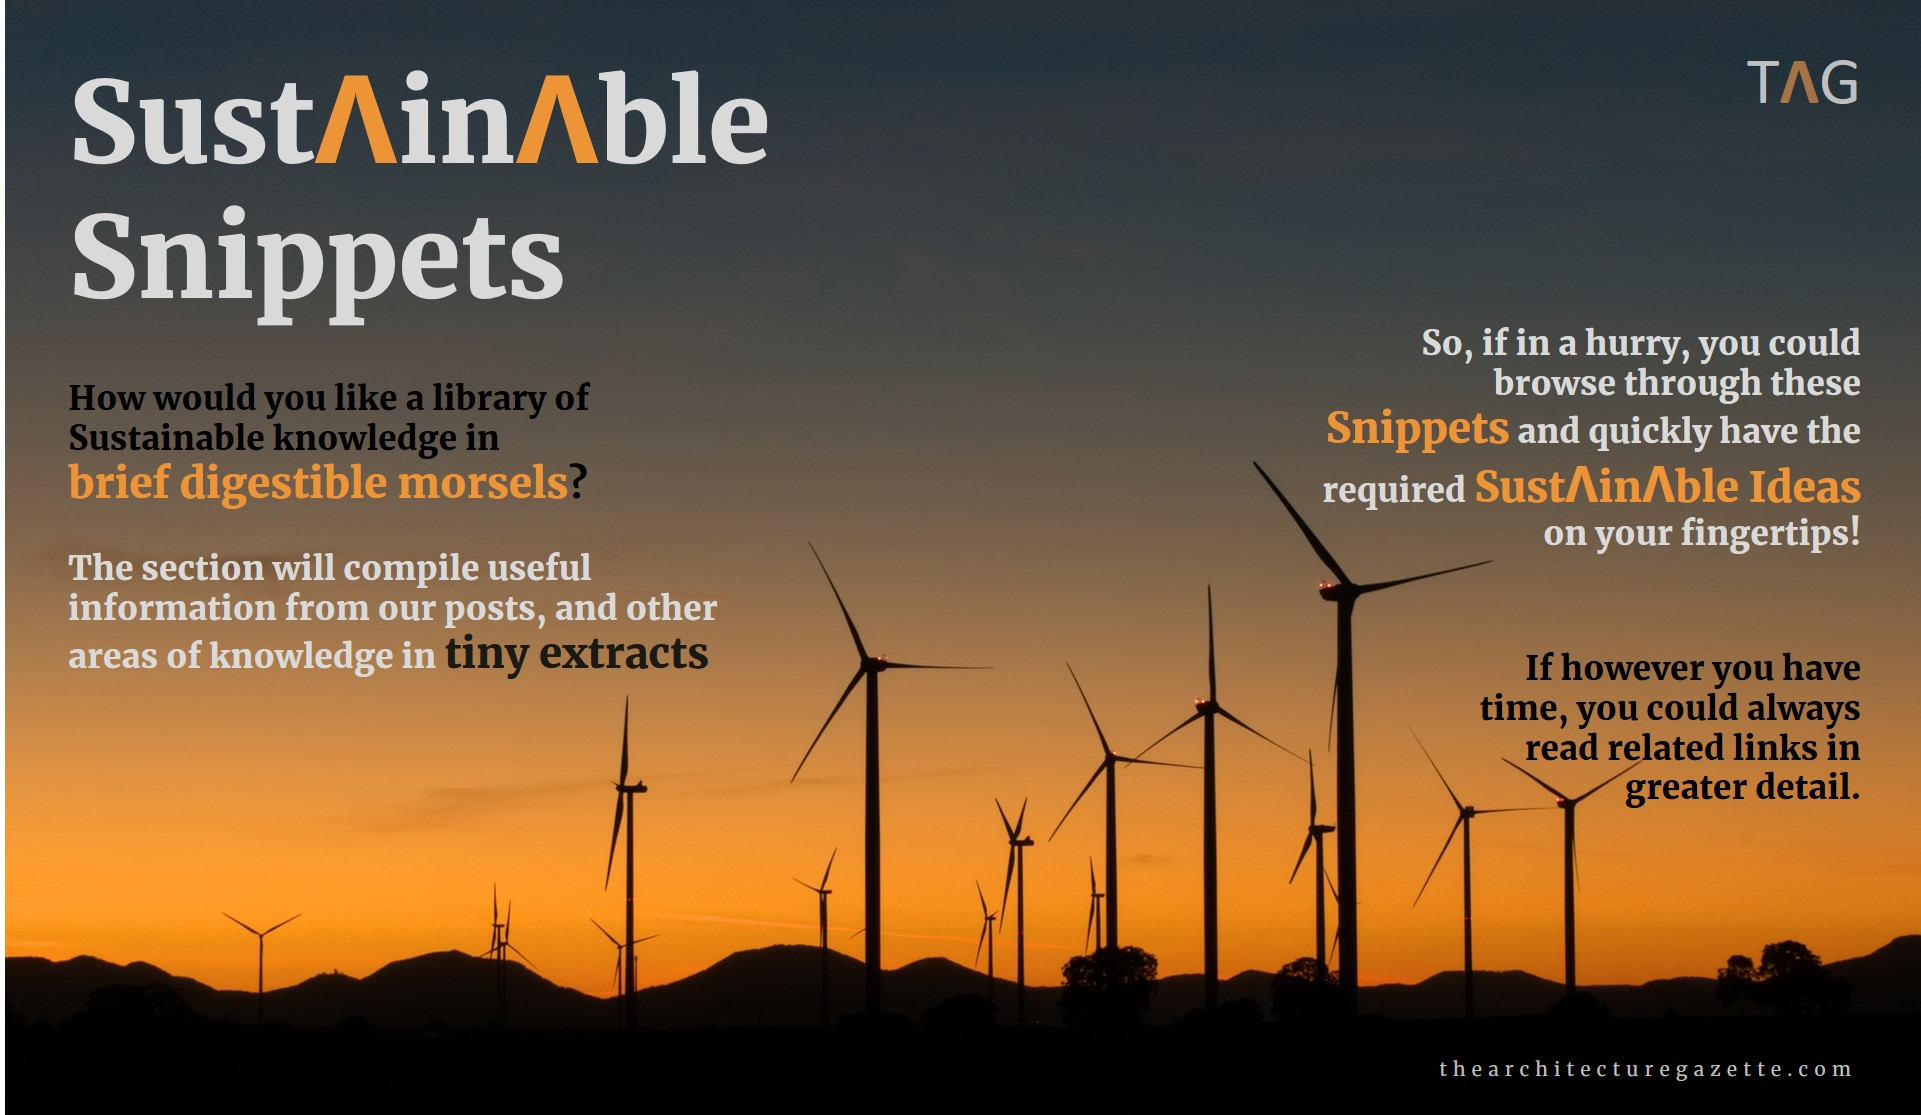 Sustainable Snippets